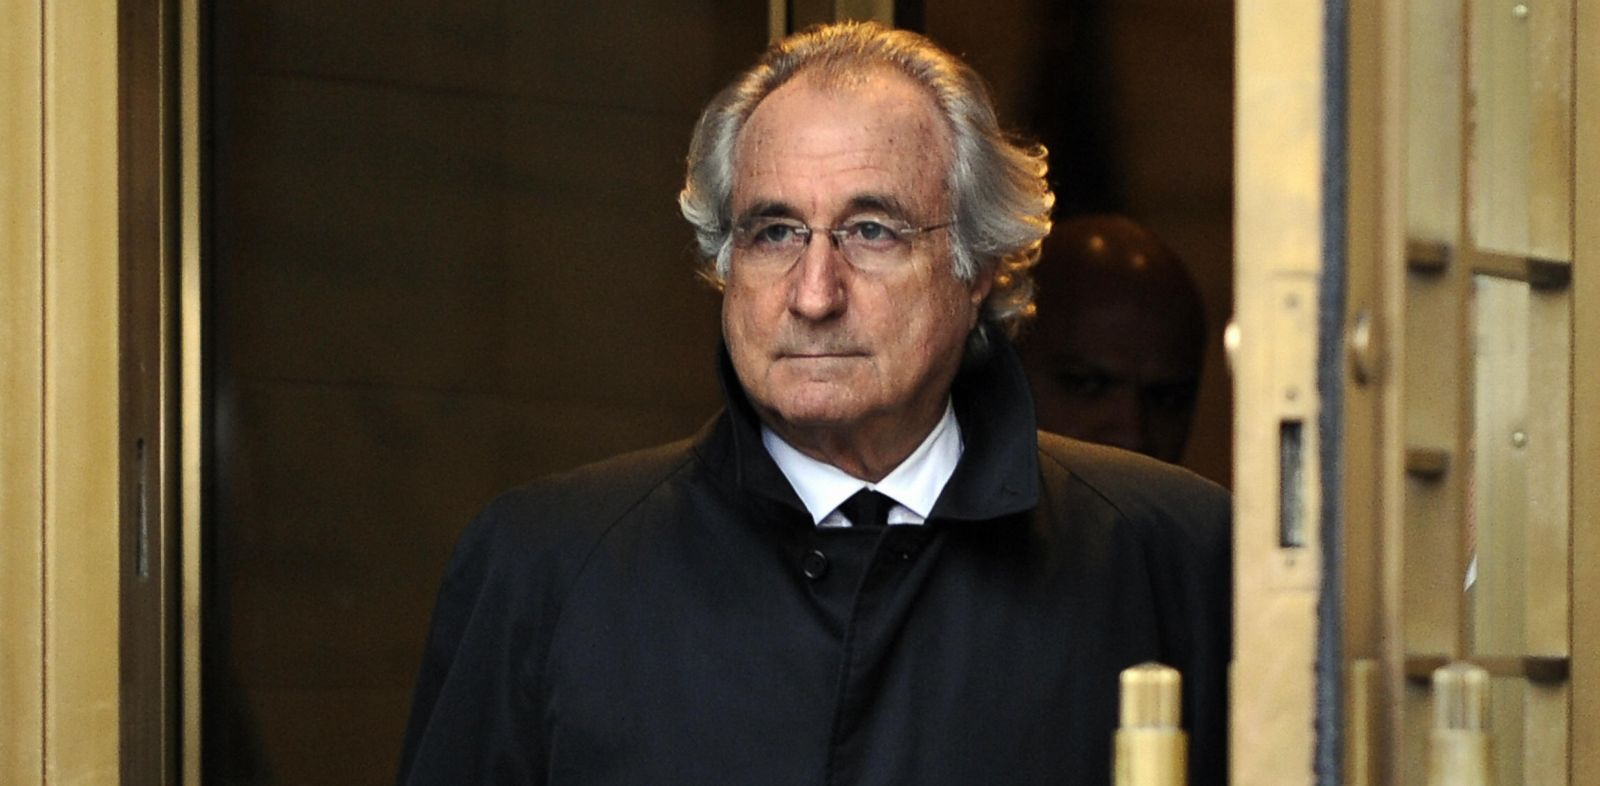 PHOTO: In this file photo, Bernie Madoff leaves the U.S. Federal Court after a hearing regarding his bail on Jan. 14, 2009 in New York.